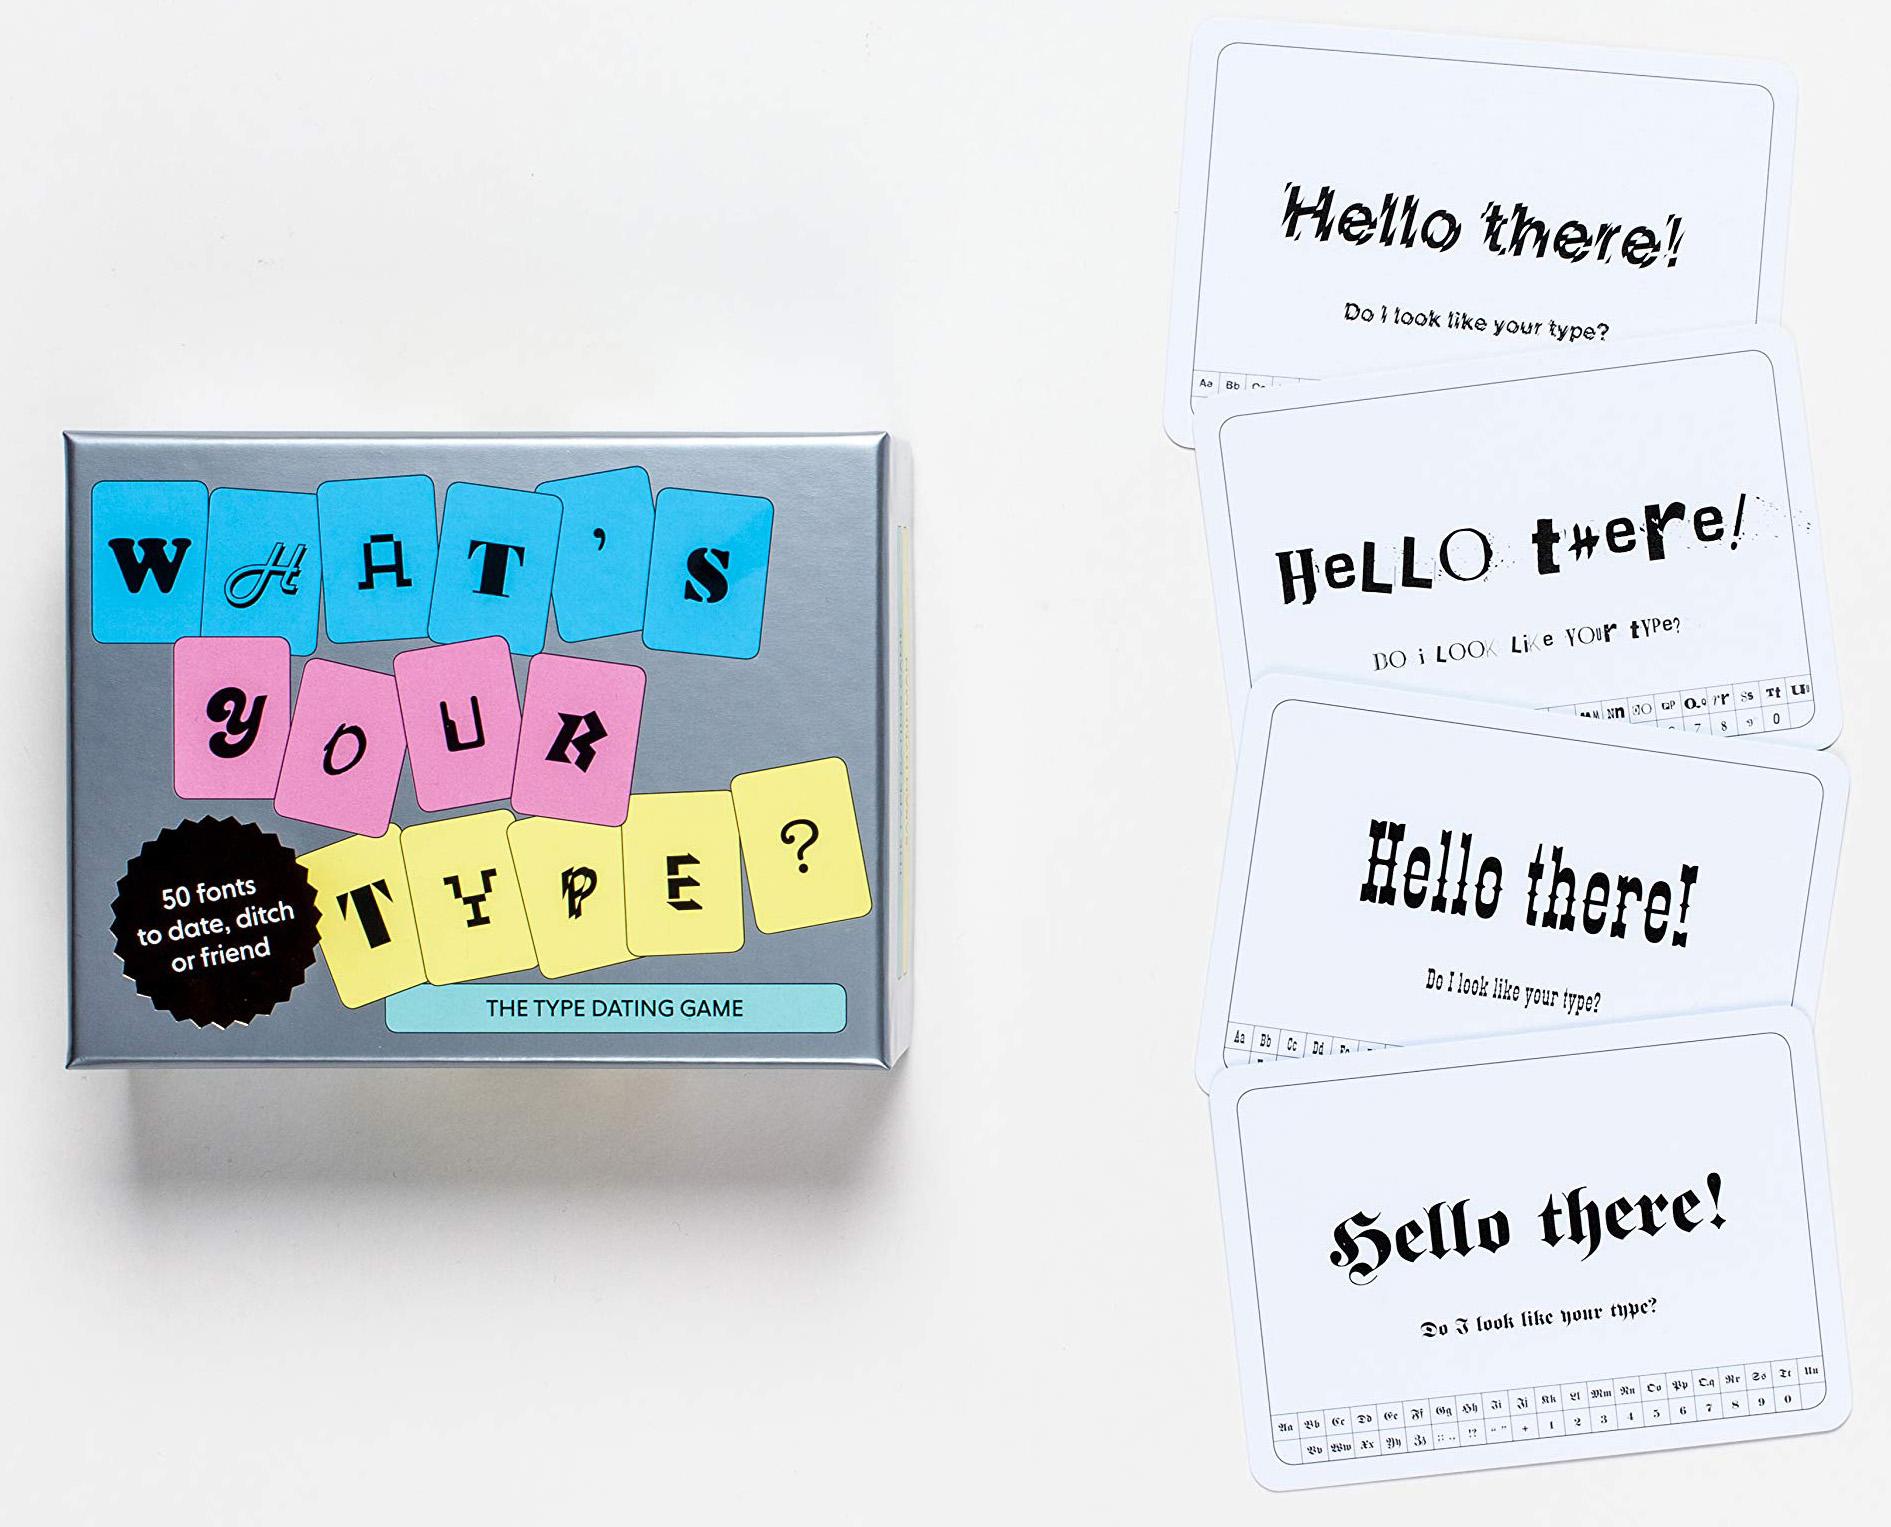 What's Your Type? The type dating card game